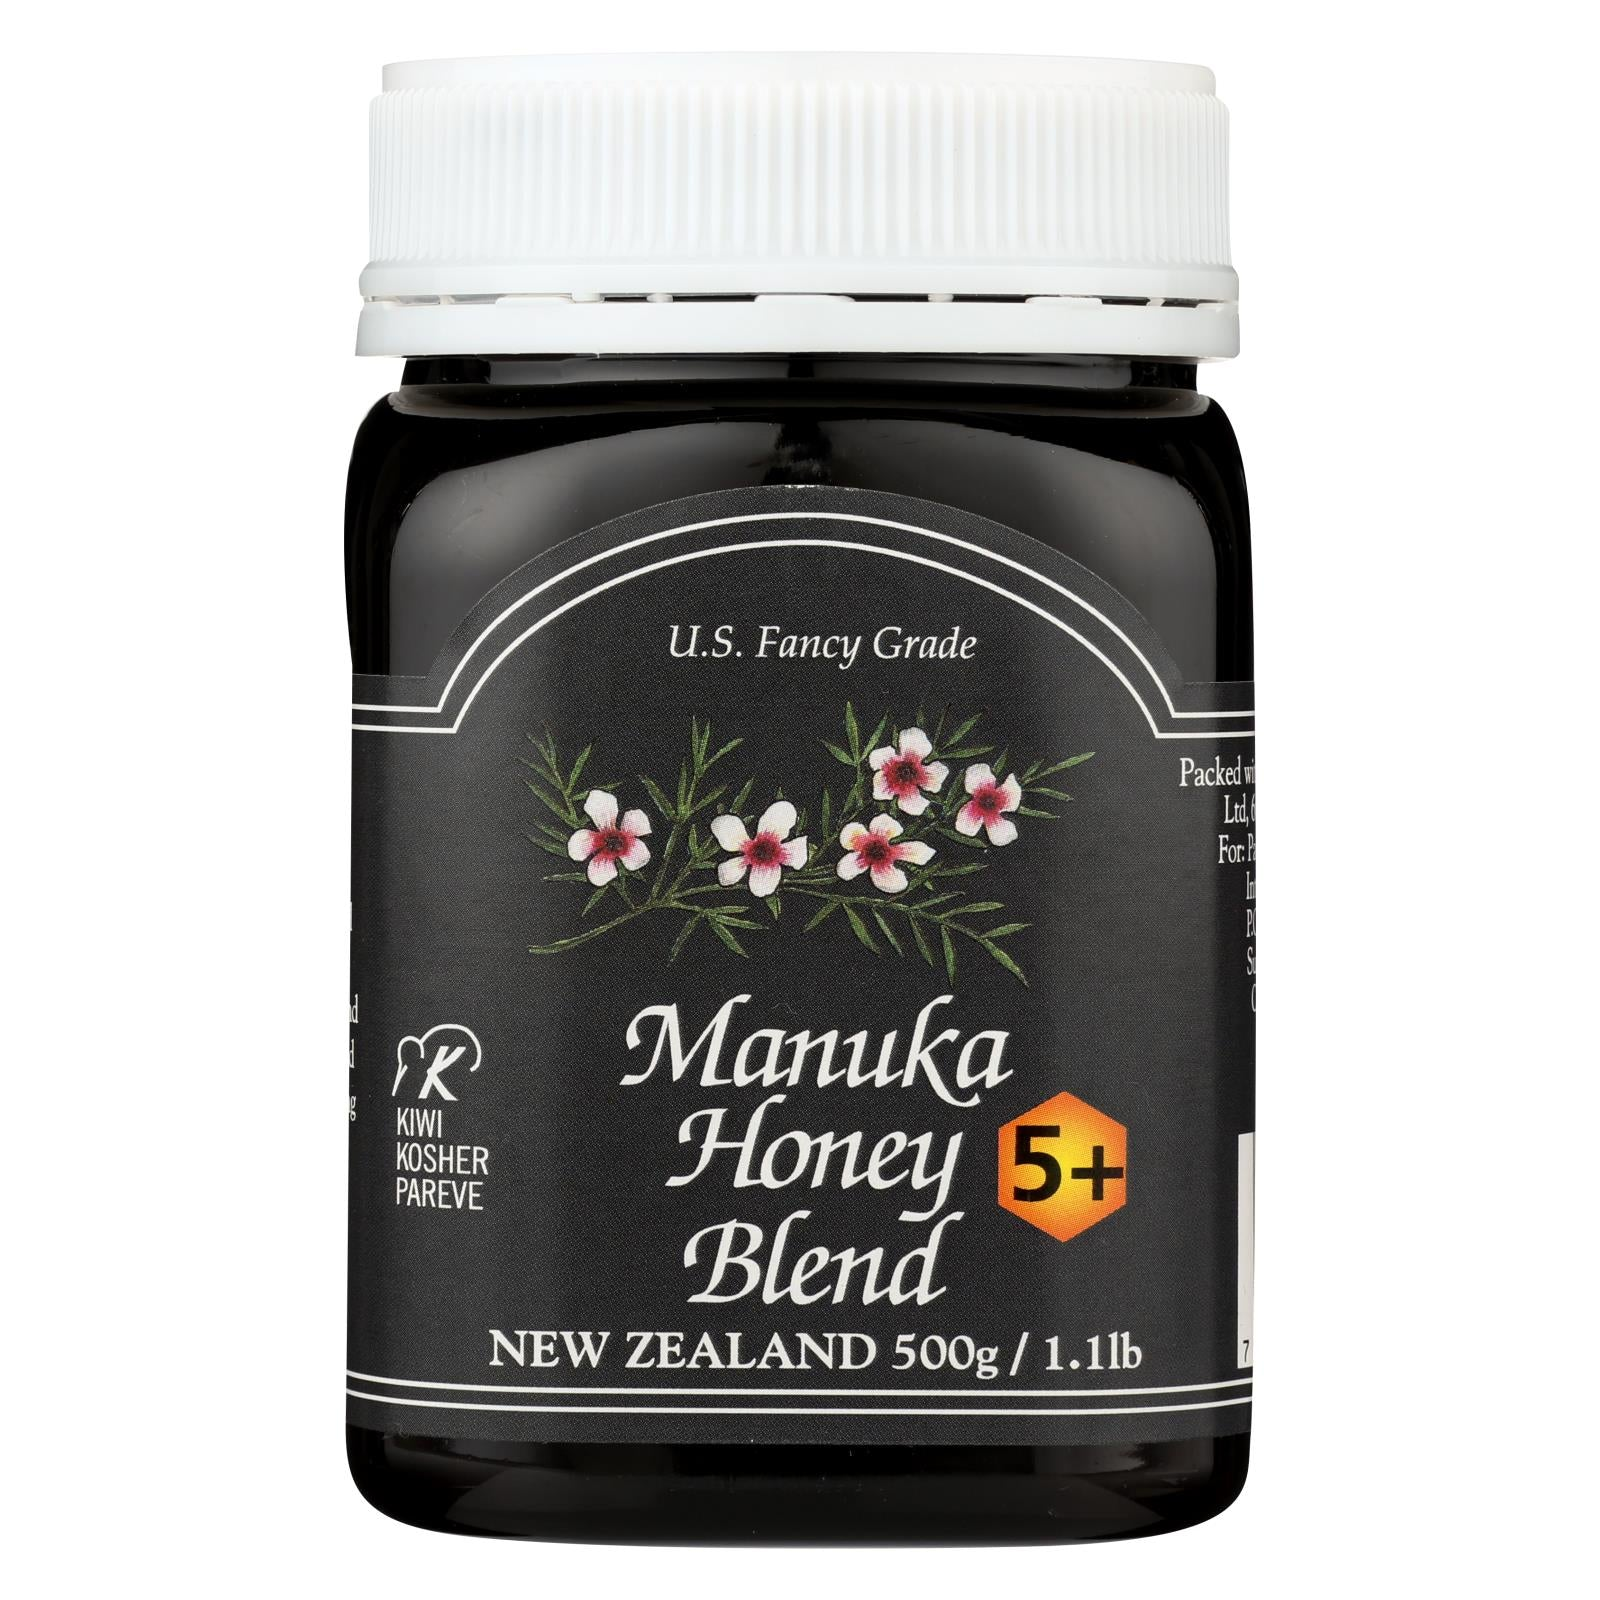 Buy Pacific Resources Manuka Honey Blend - Case of 6 - 1.1 lb. - Honey from Veroeco.com